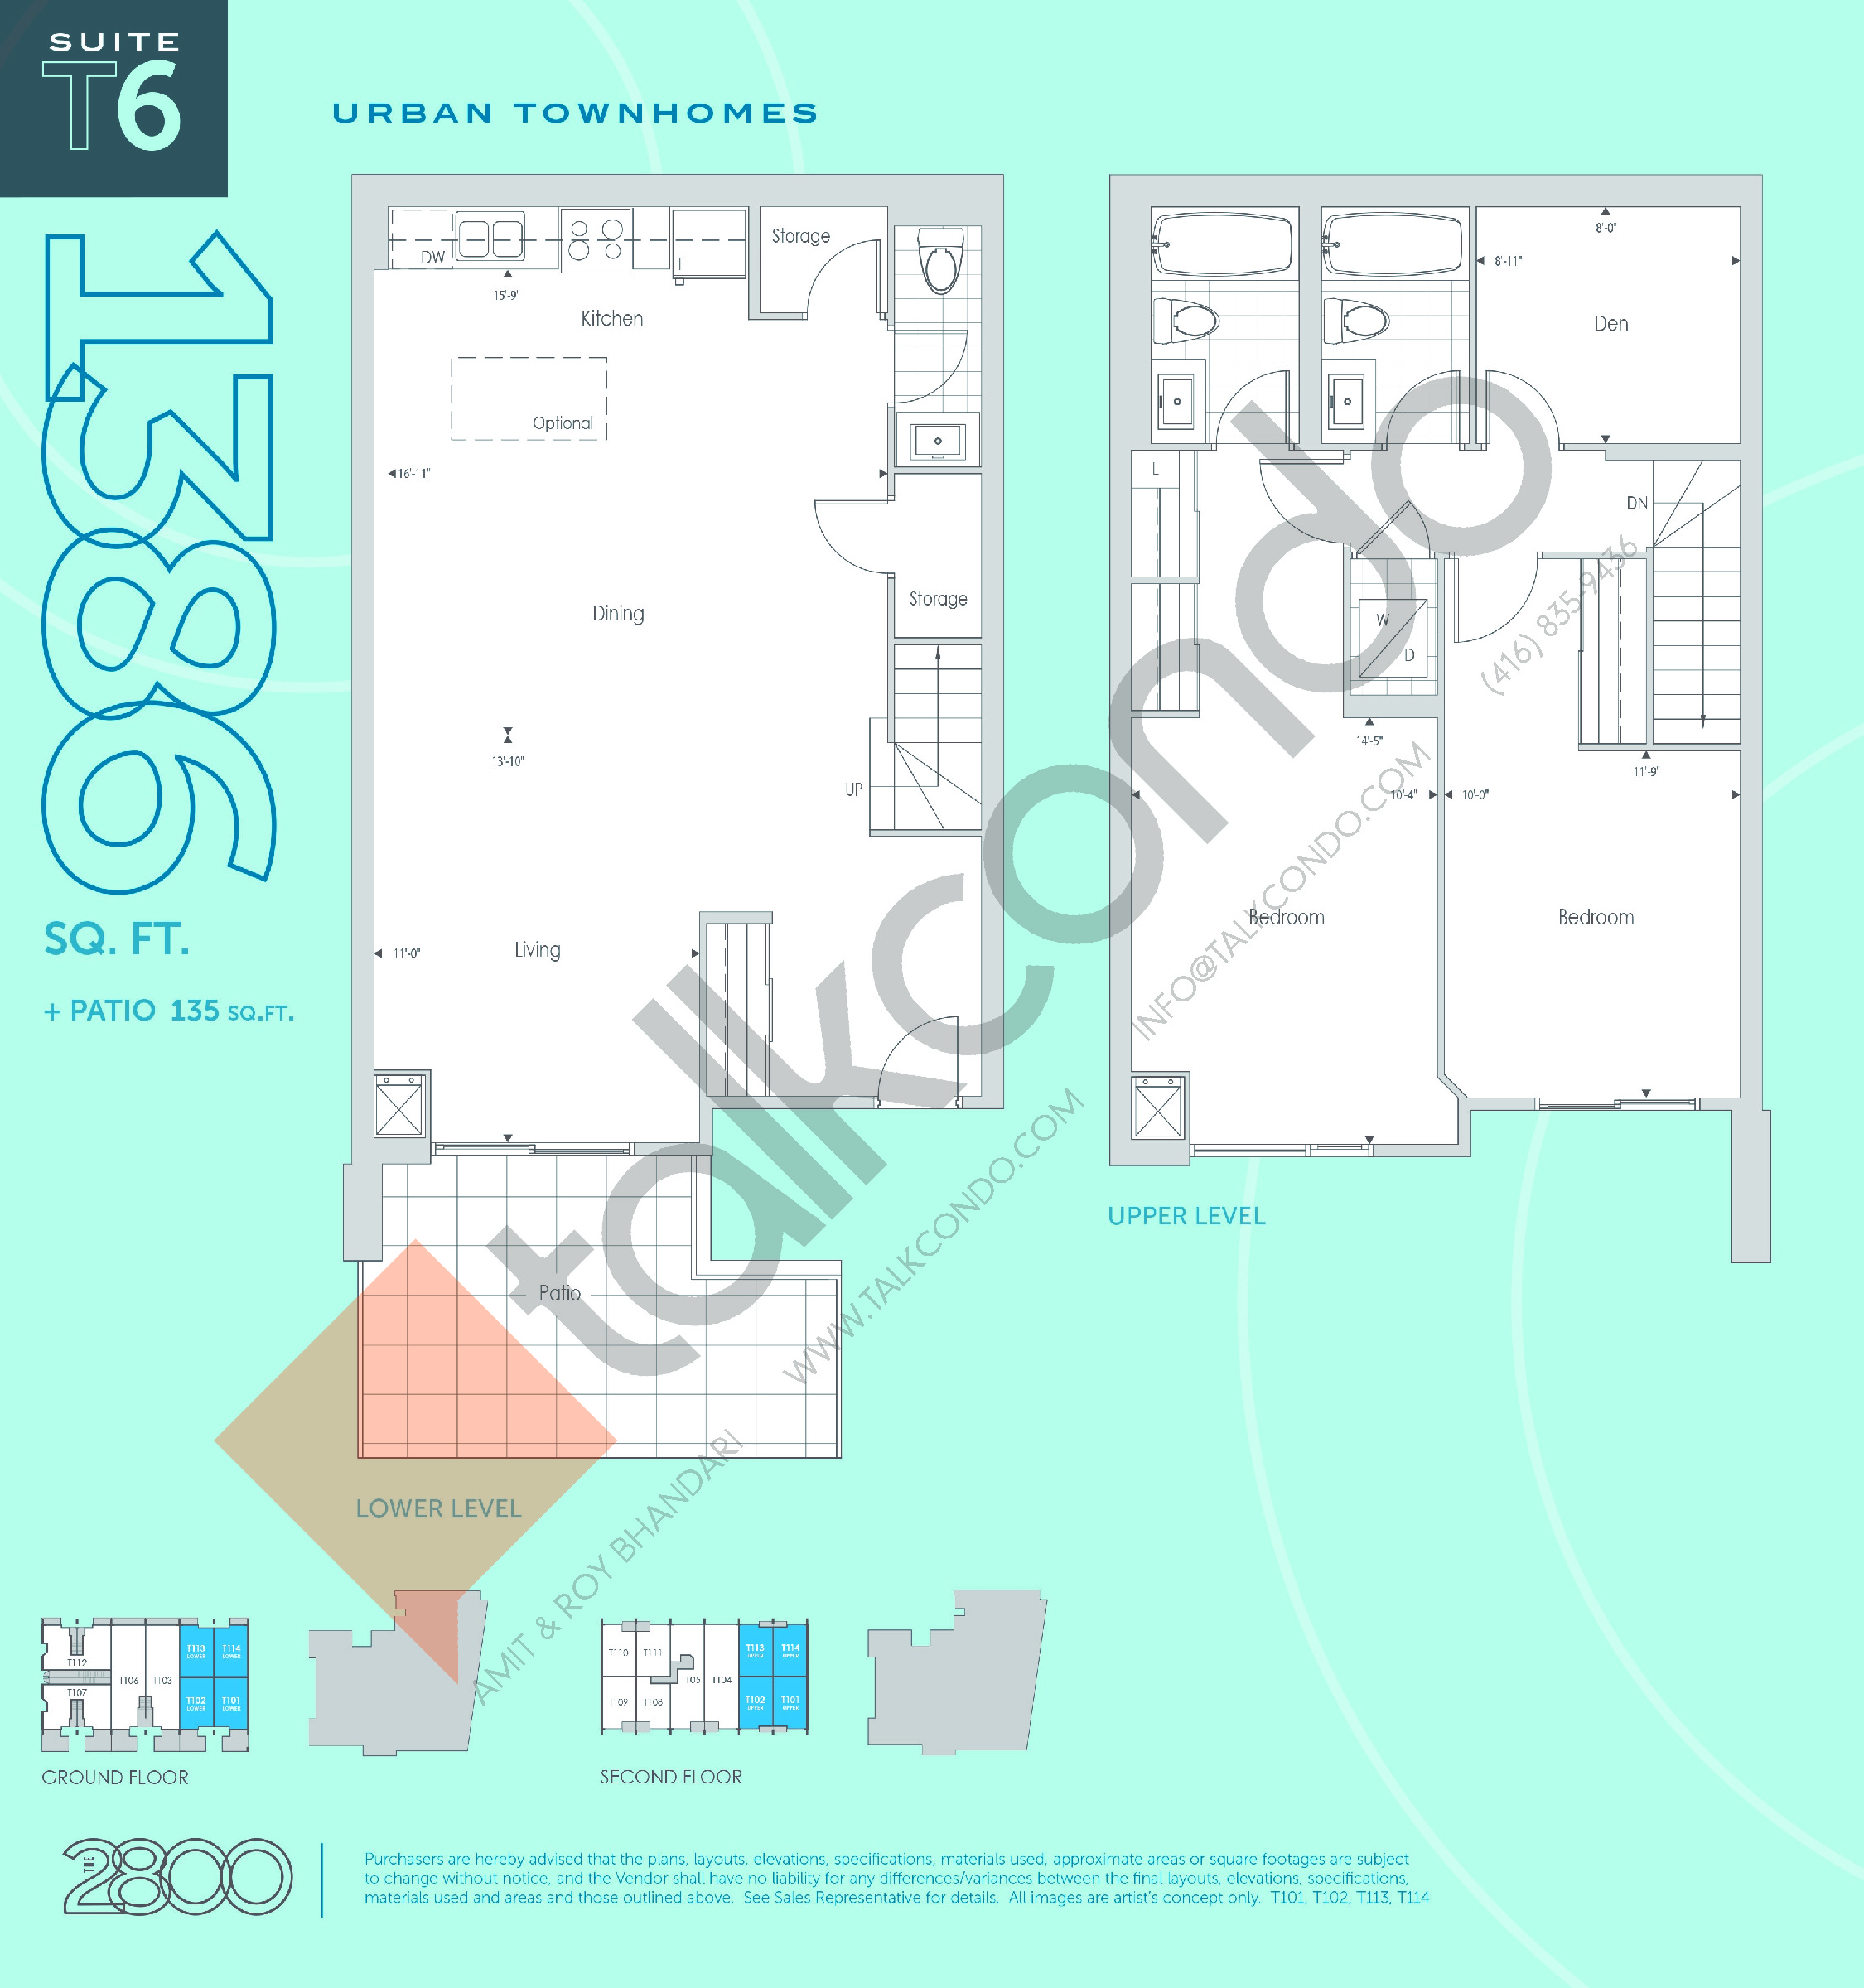 T6 Floor Plan at The 2800 Condos - 1386 sq.ft